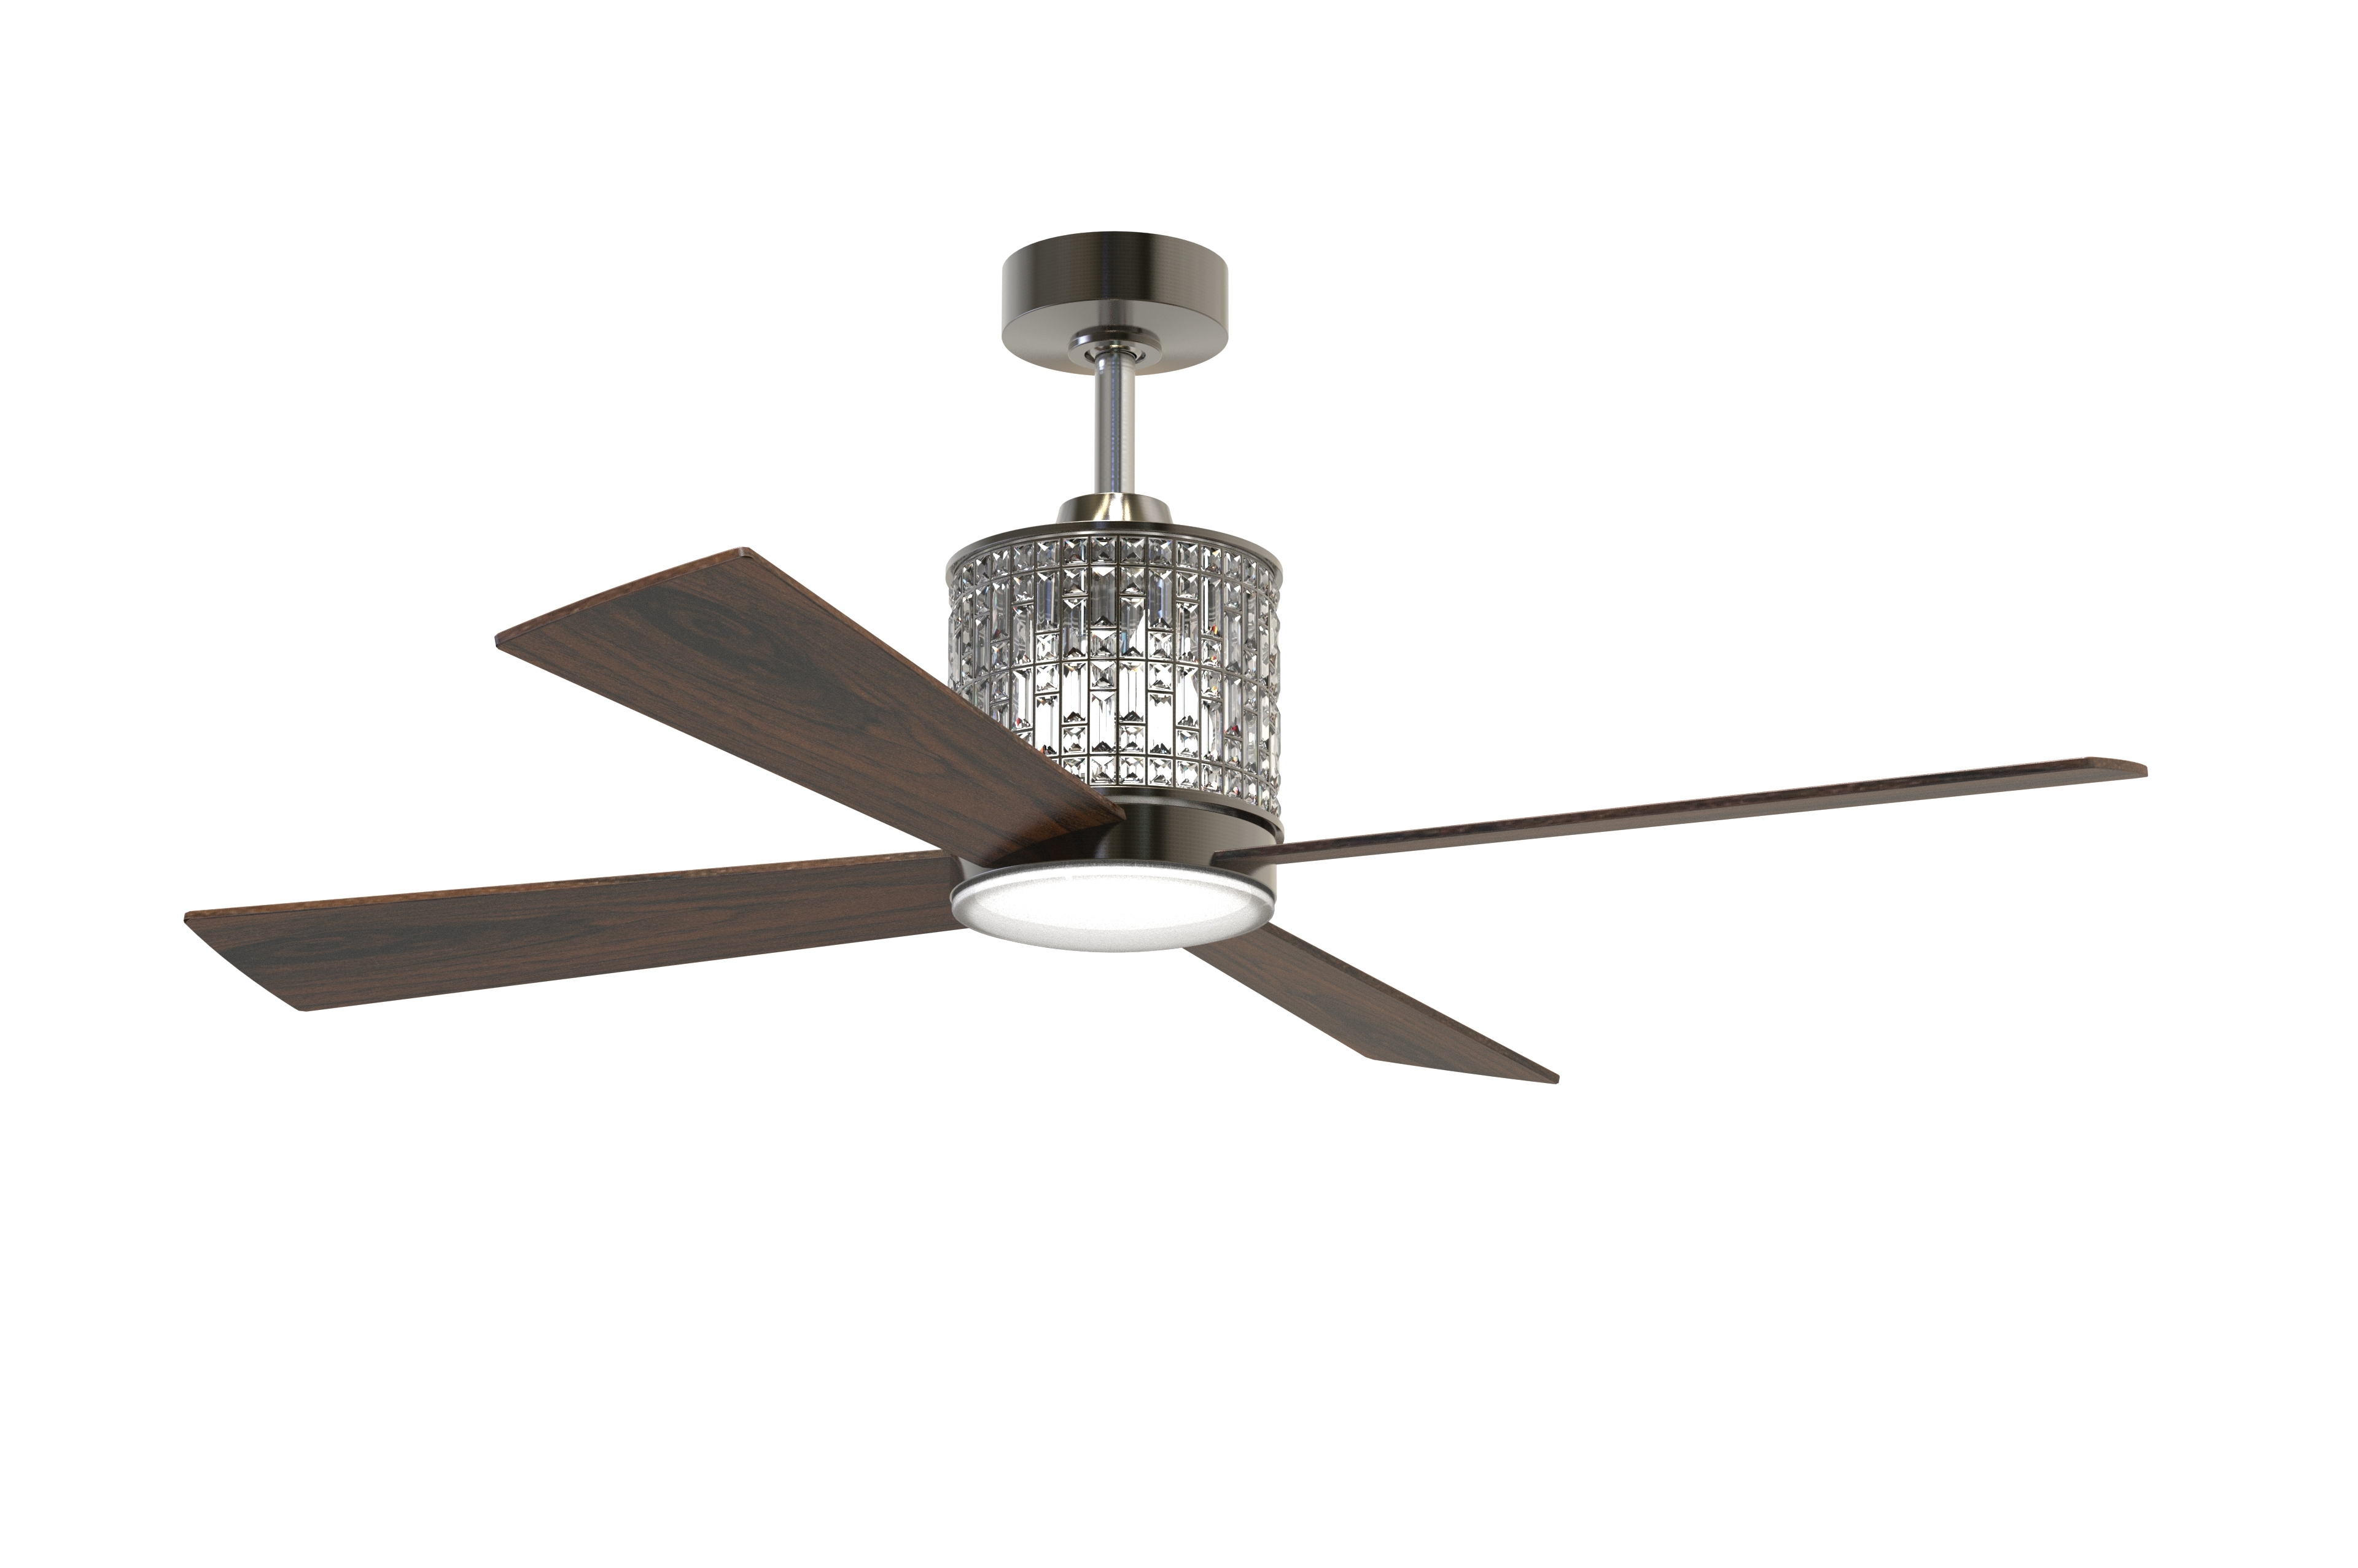 Widely Used Craftmade Mar52Esp4 Espresso In Craftmade Outdoor Ceiling Fans Craftmade (View 20 of 20)